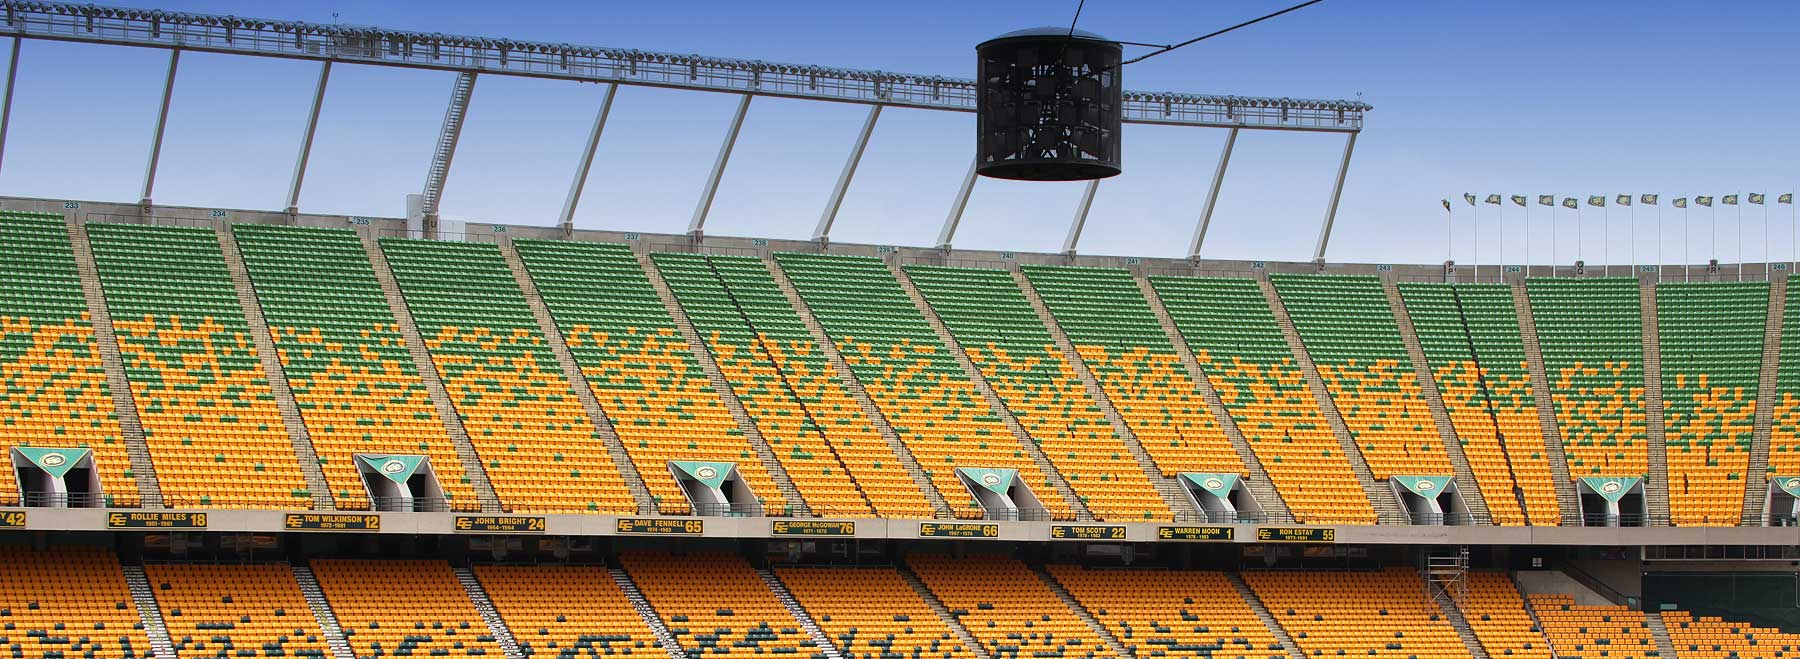 Edmonton's Commonwealth Stadium suspended centre speaker pod complete with new Community speakers.